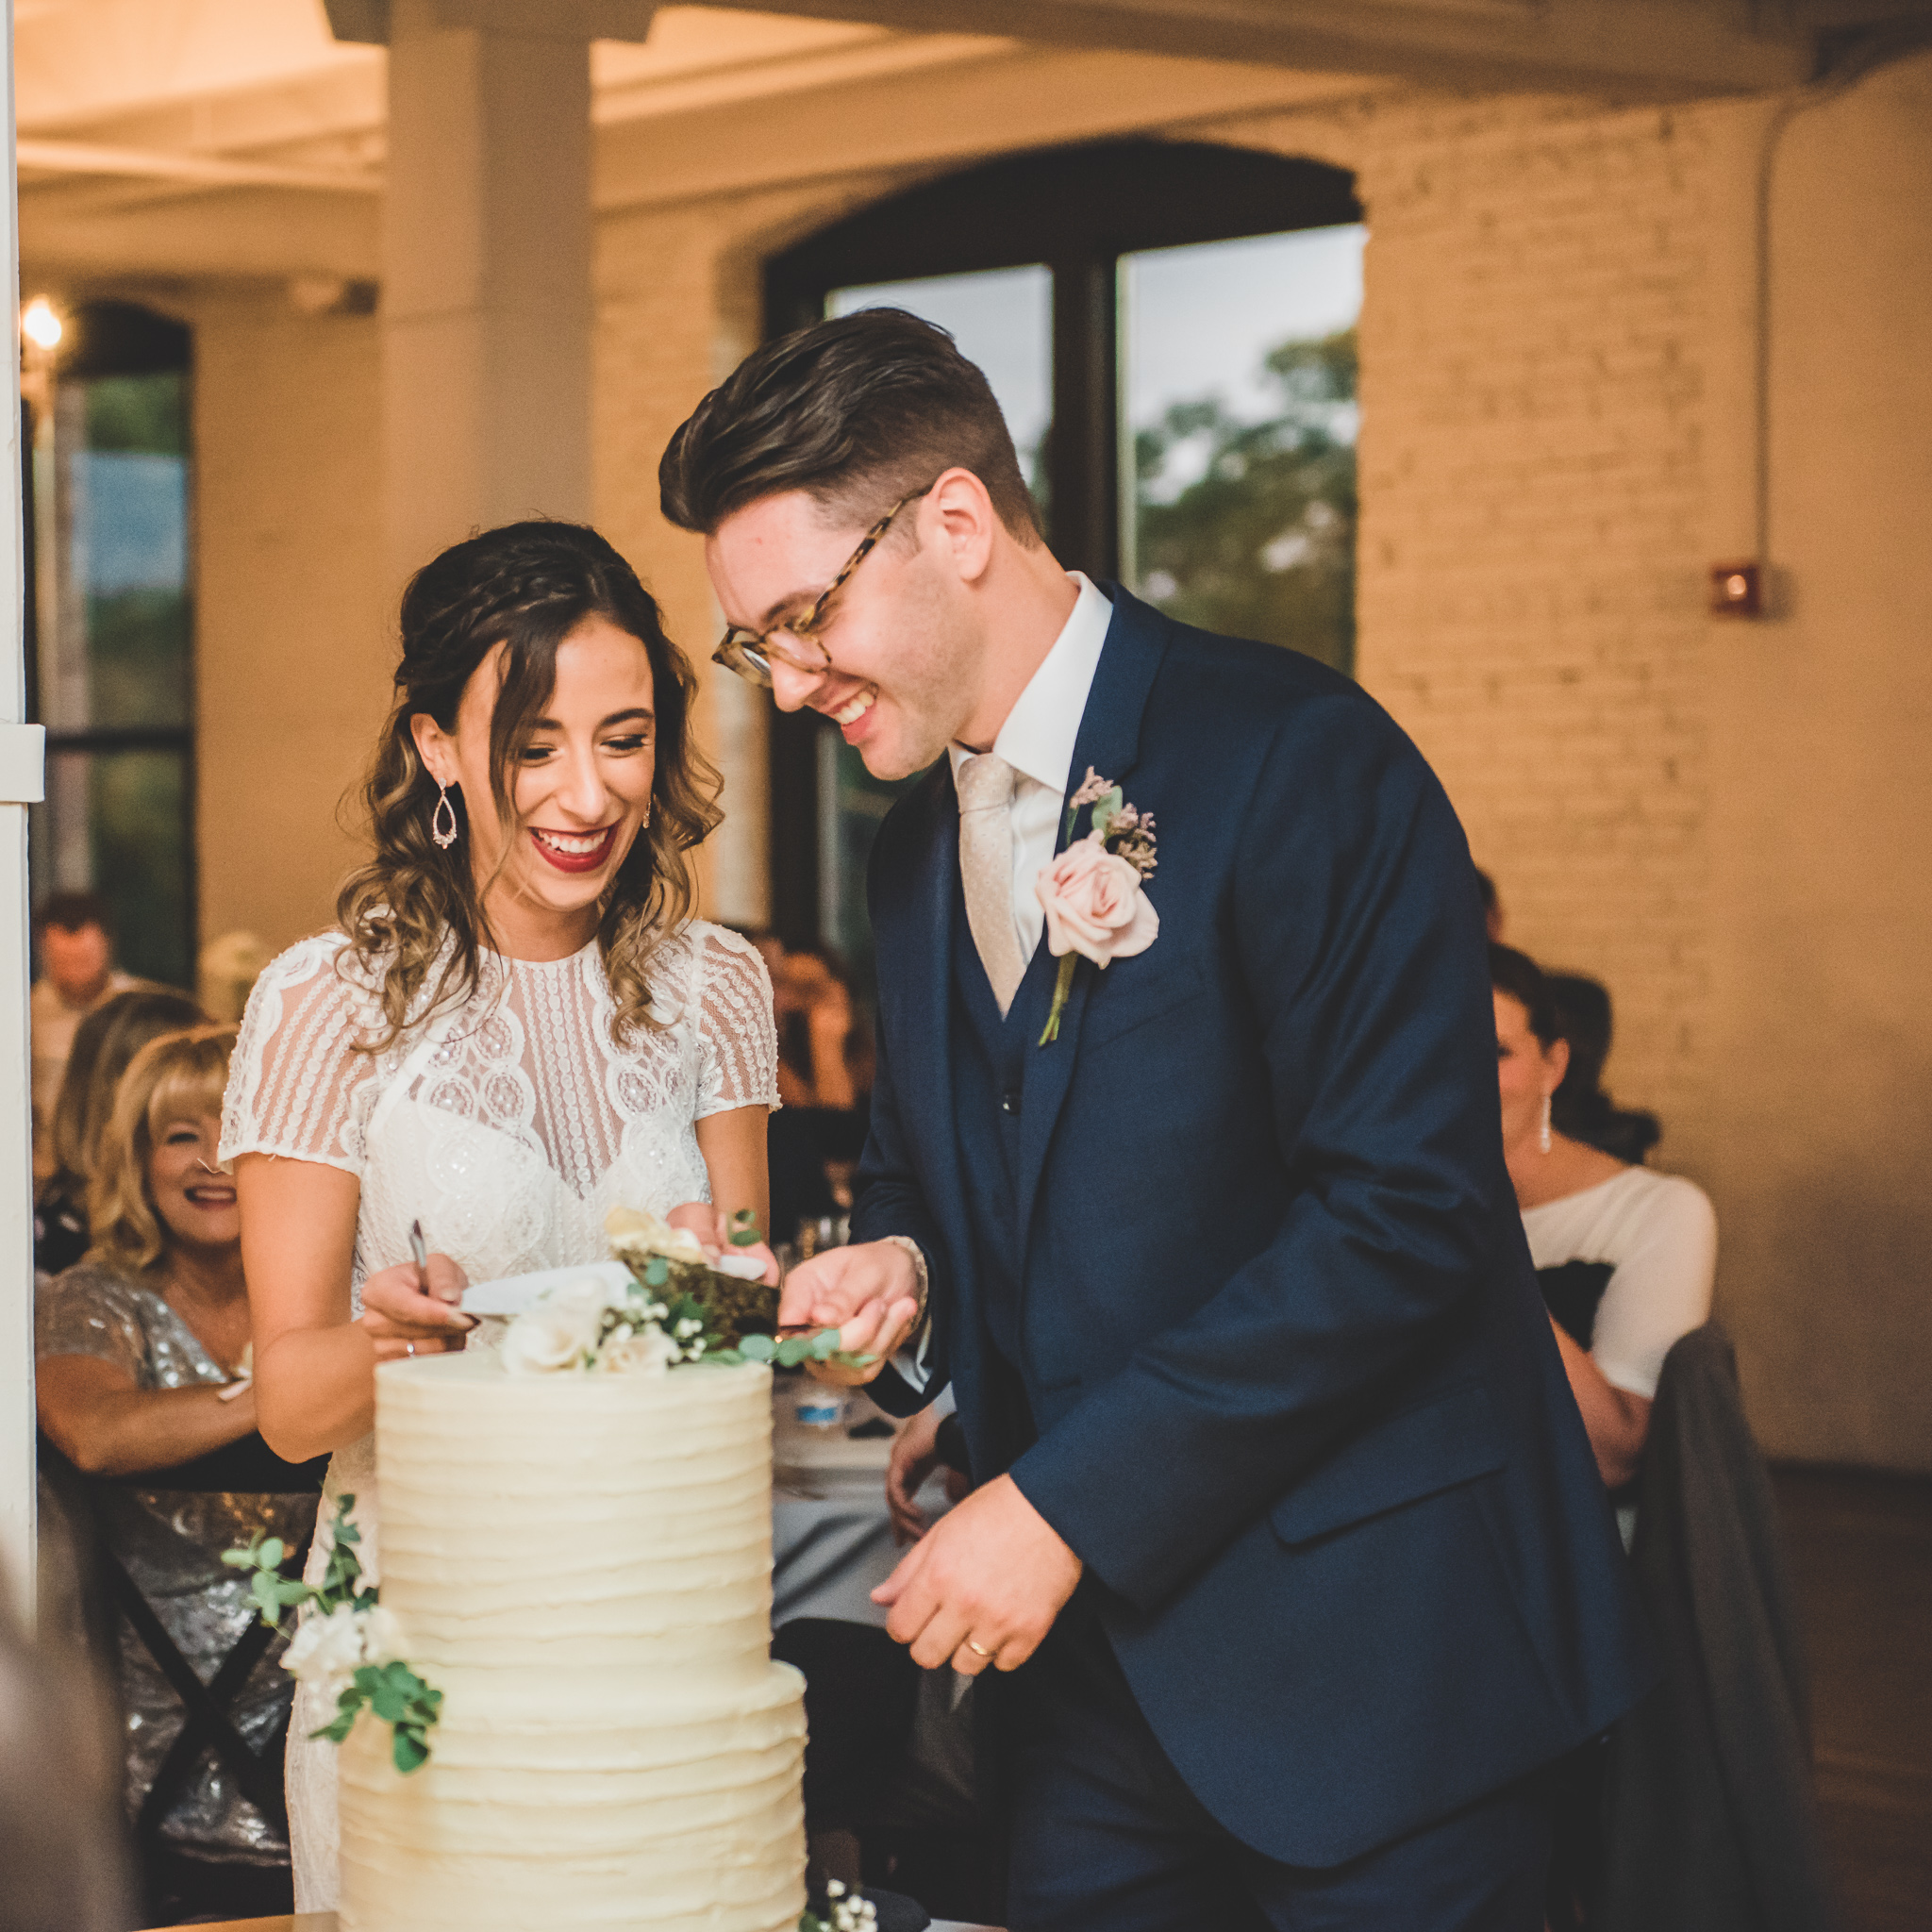 20180915wedding-kyler-michaela-761.jpg